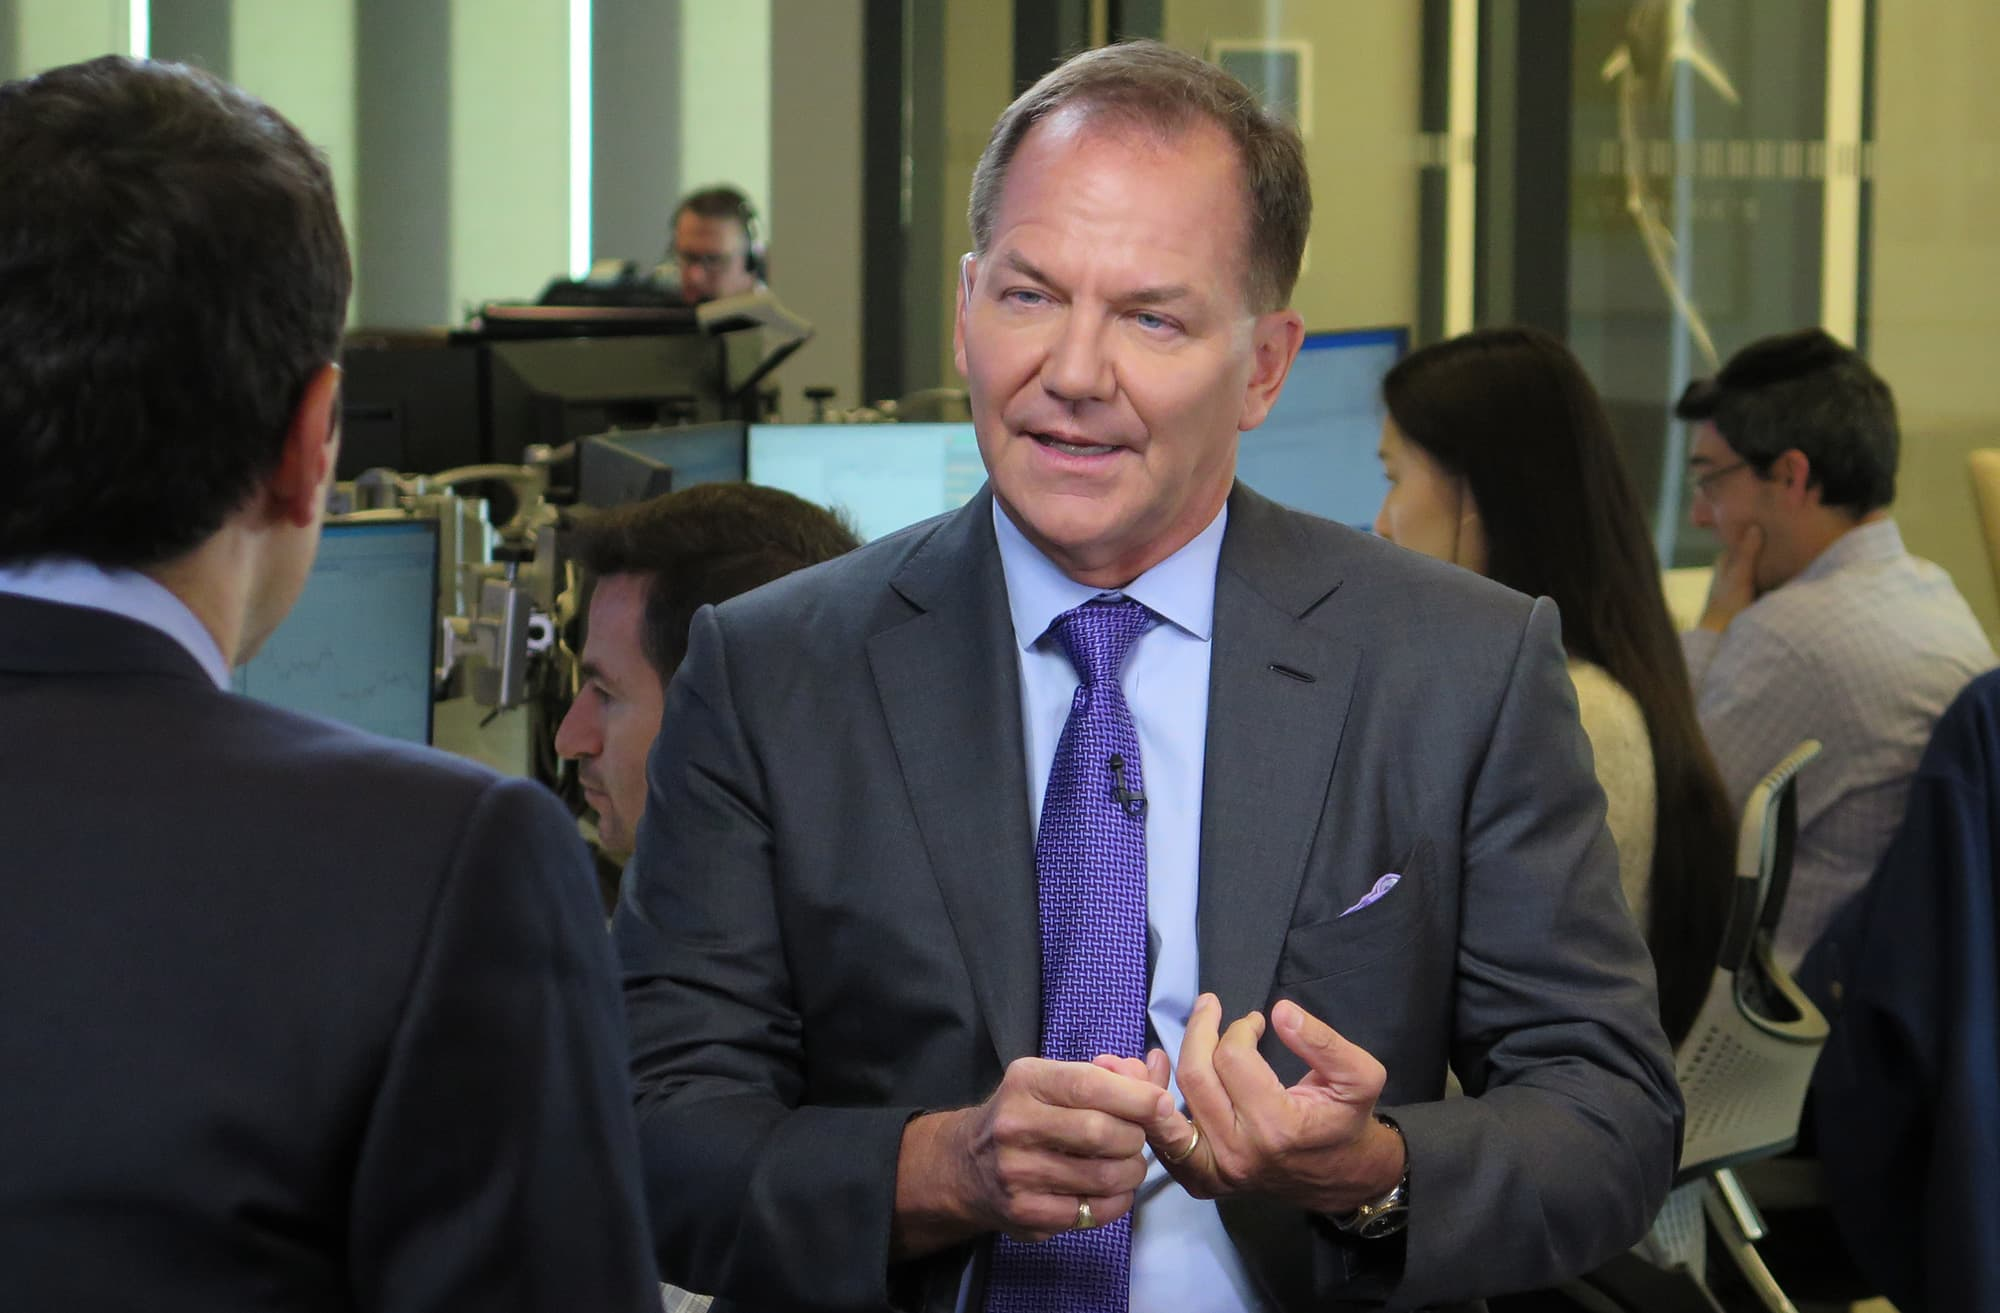 Paul Tudor Jones gets emotional about his daughter getting coronavirus